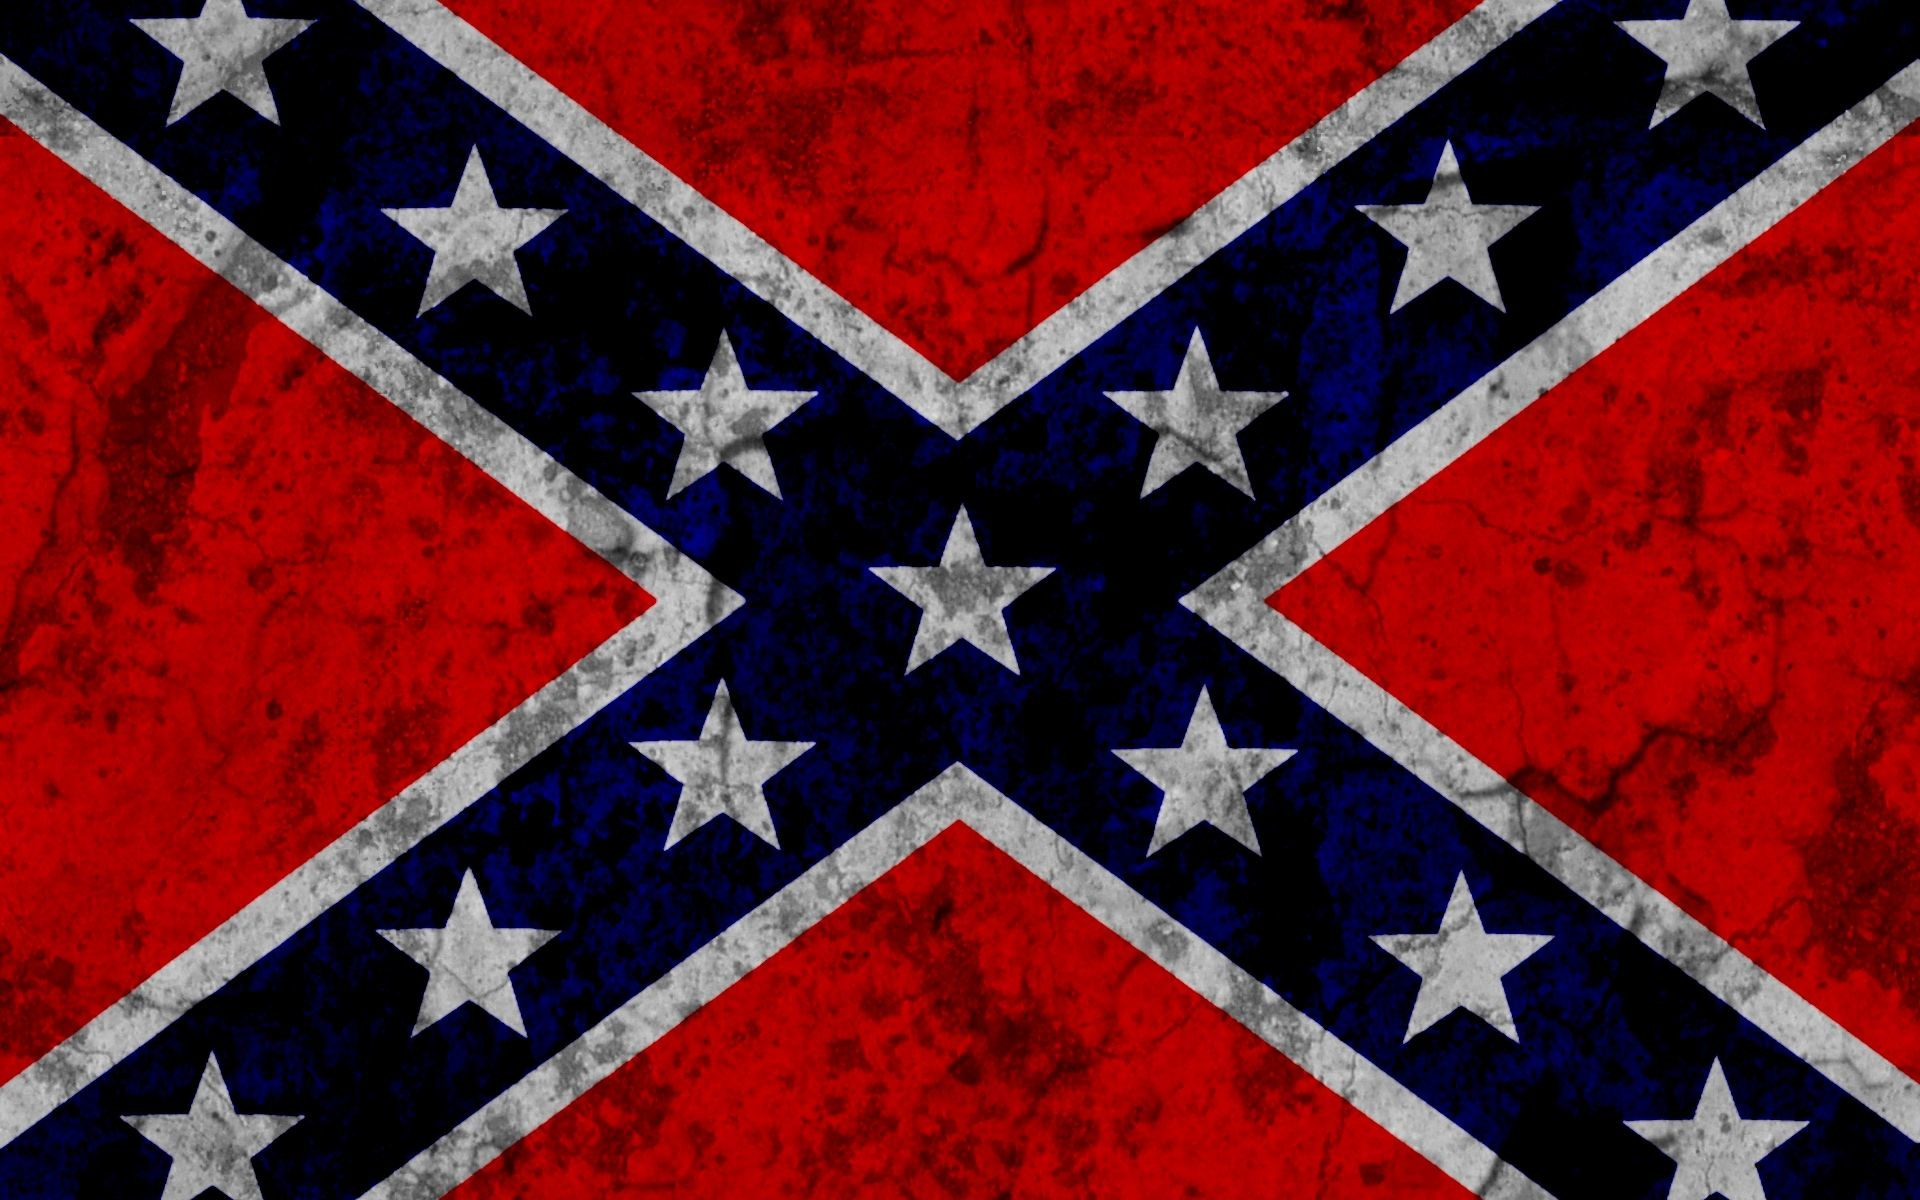 Rebel Flag Wallpaper For Phone About Flag Collections